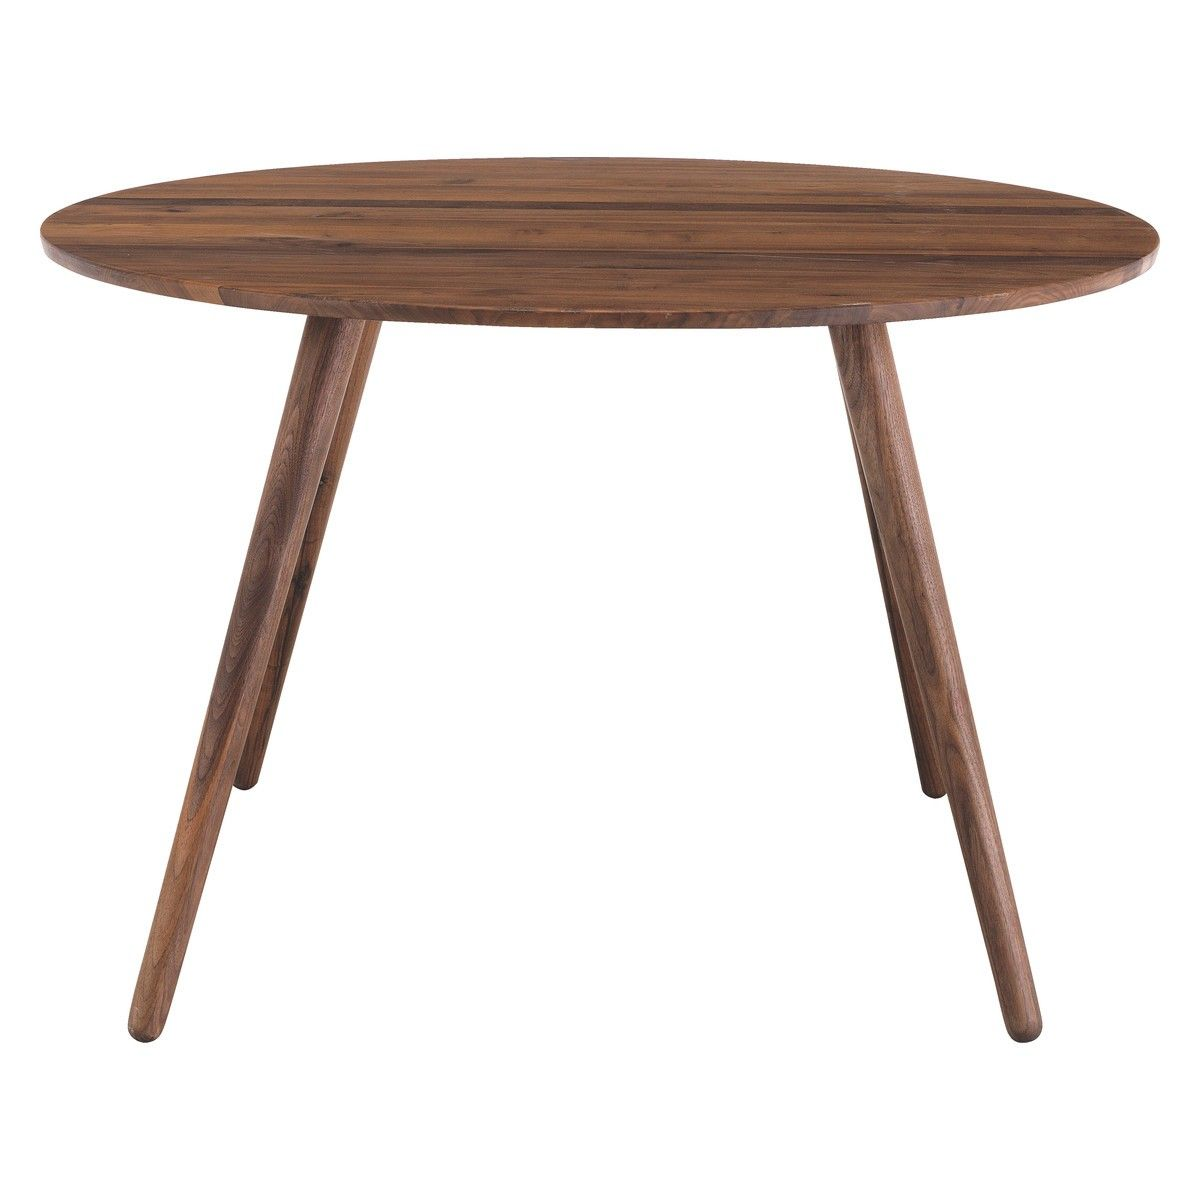 Vince 4 Seat Round Walnut Dining Table Now At Habitat Uk